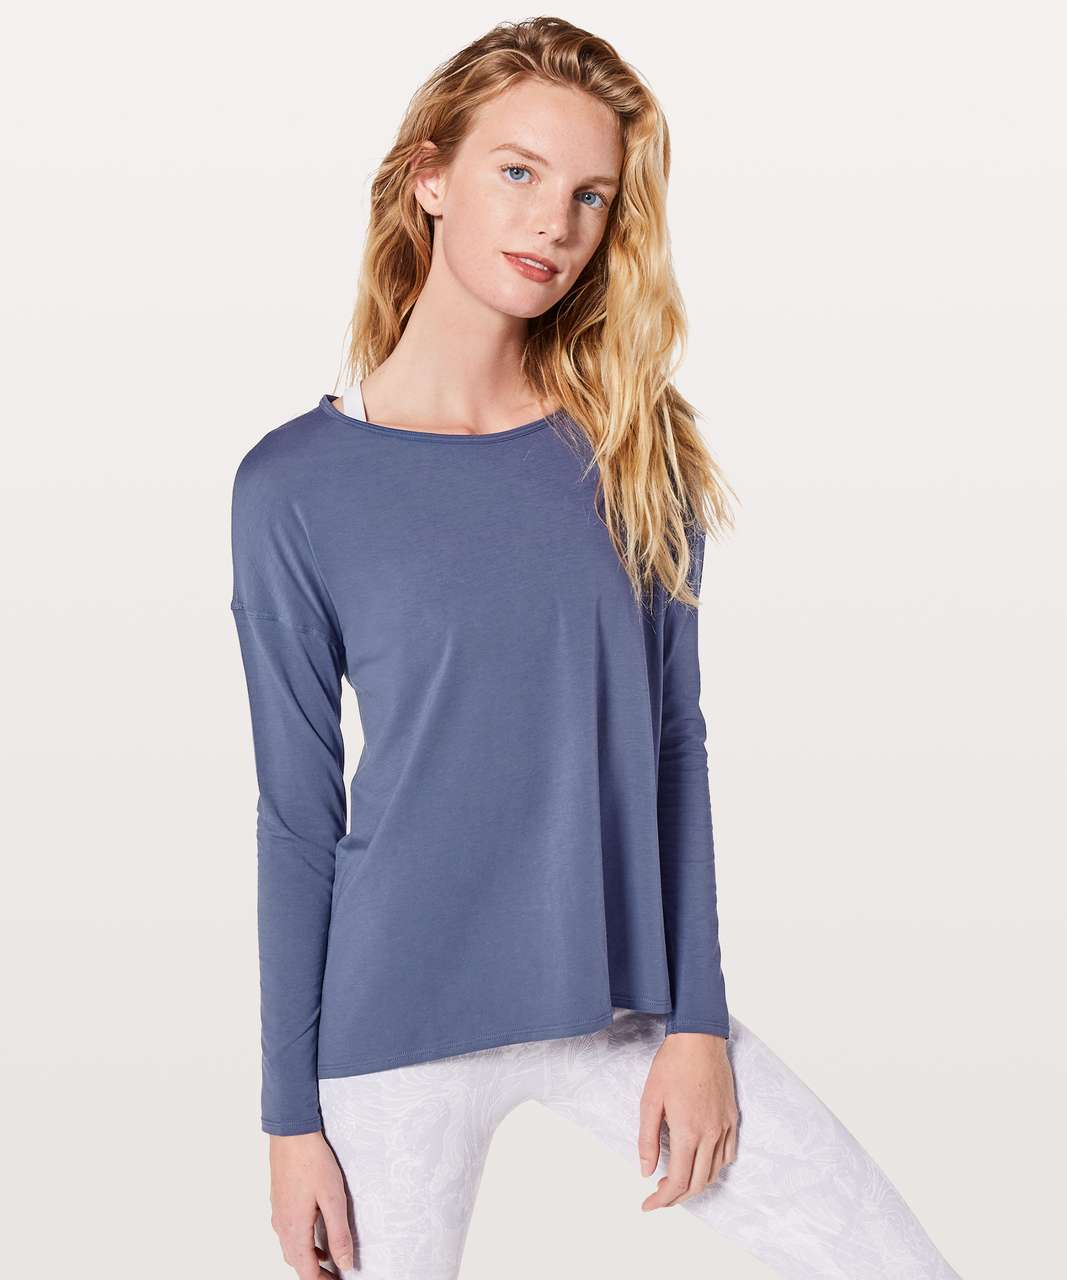 Lululemon Back Into It Long Sleeve - Moody Blues